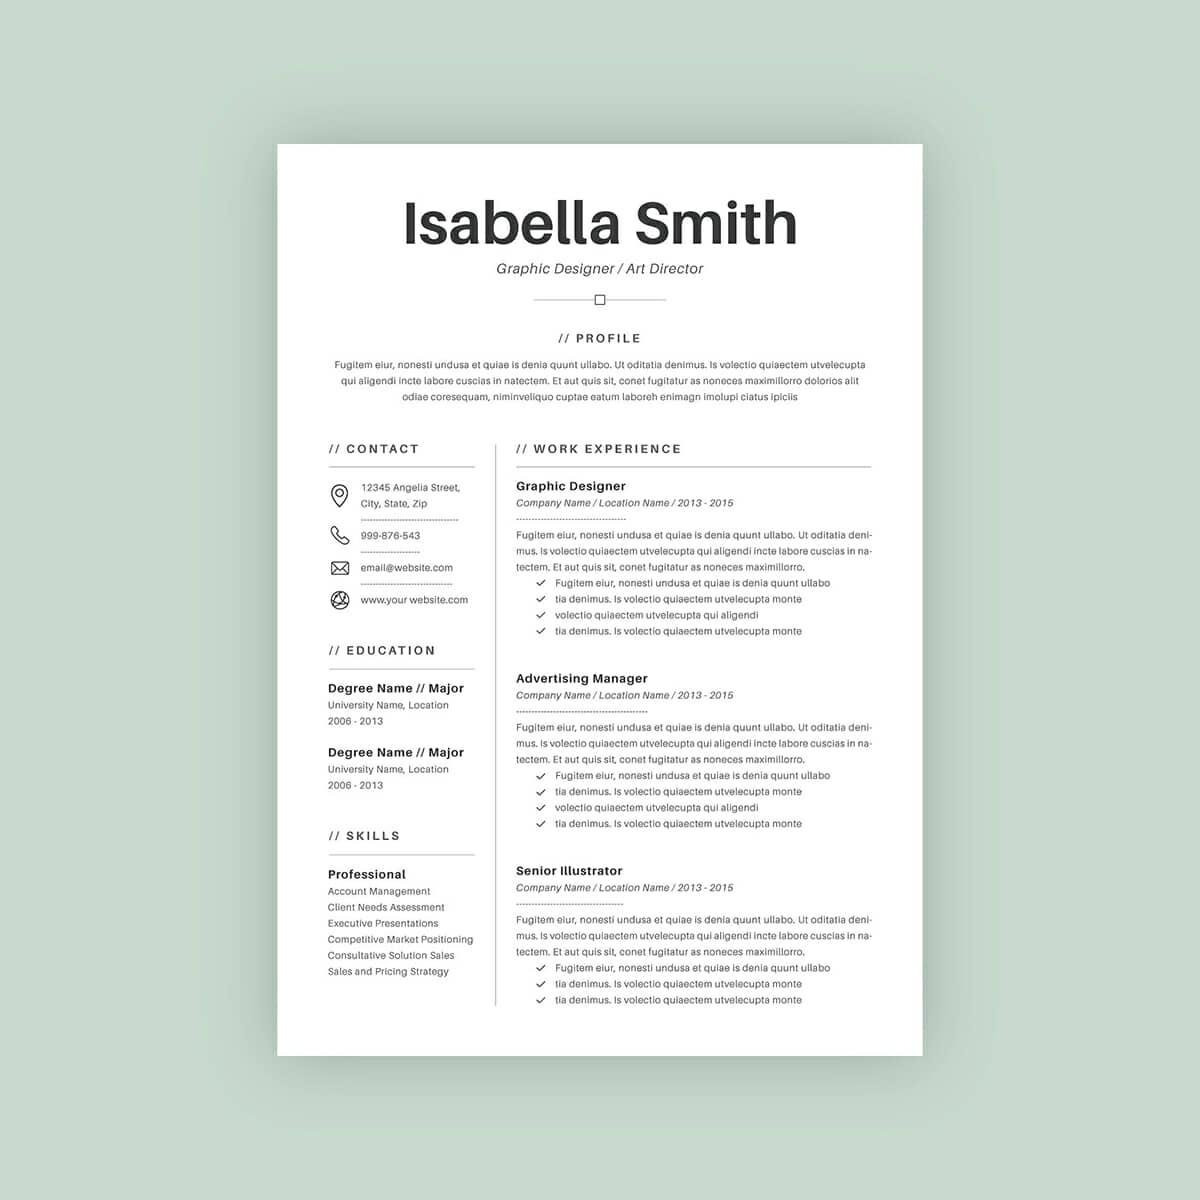 How To Make A Basic Resume Basic Resume Templates 15 43 Examples To Download And Use Now